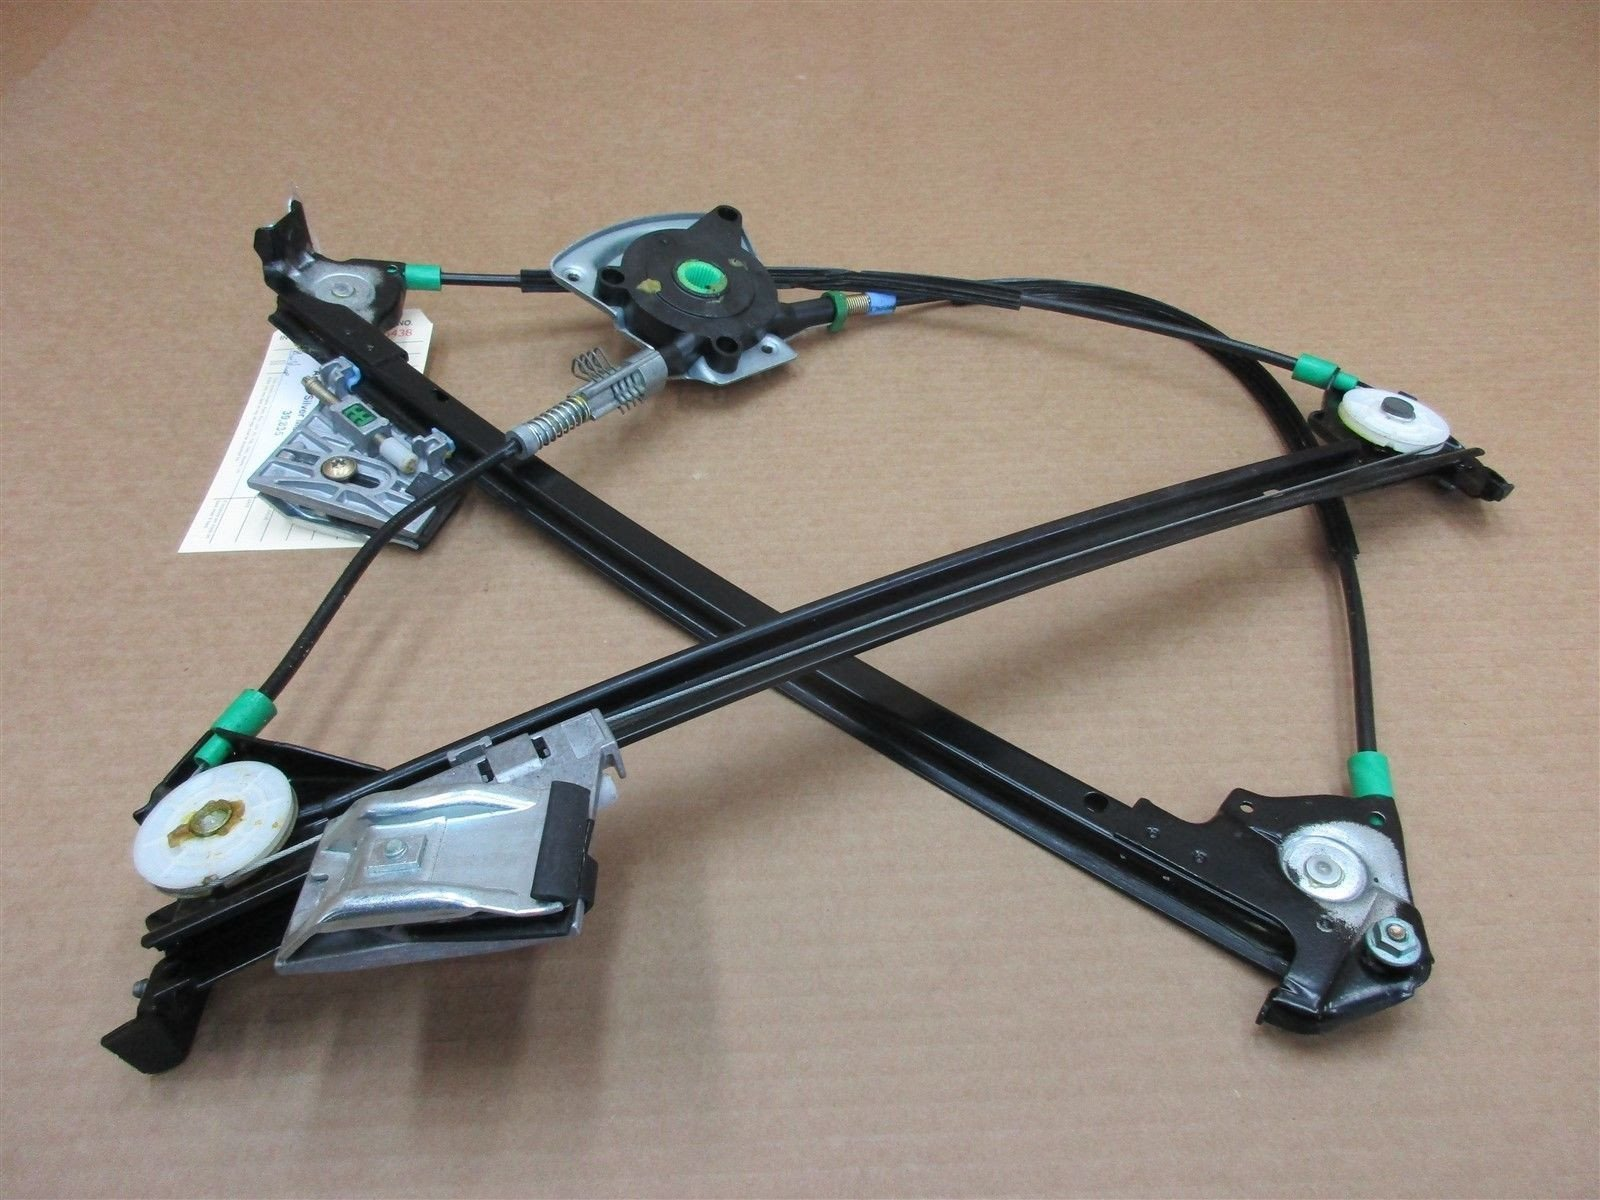 00 Boxster S RWD Porsche 986 R WINDOW REGULATOR 98654201603 PASSENGER 39,835